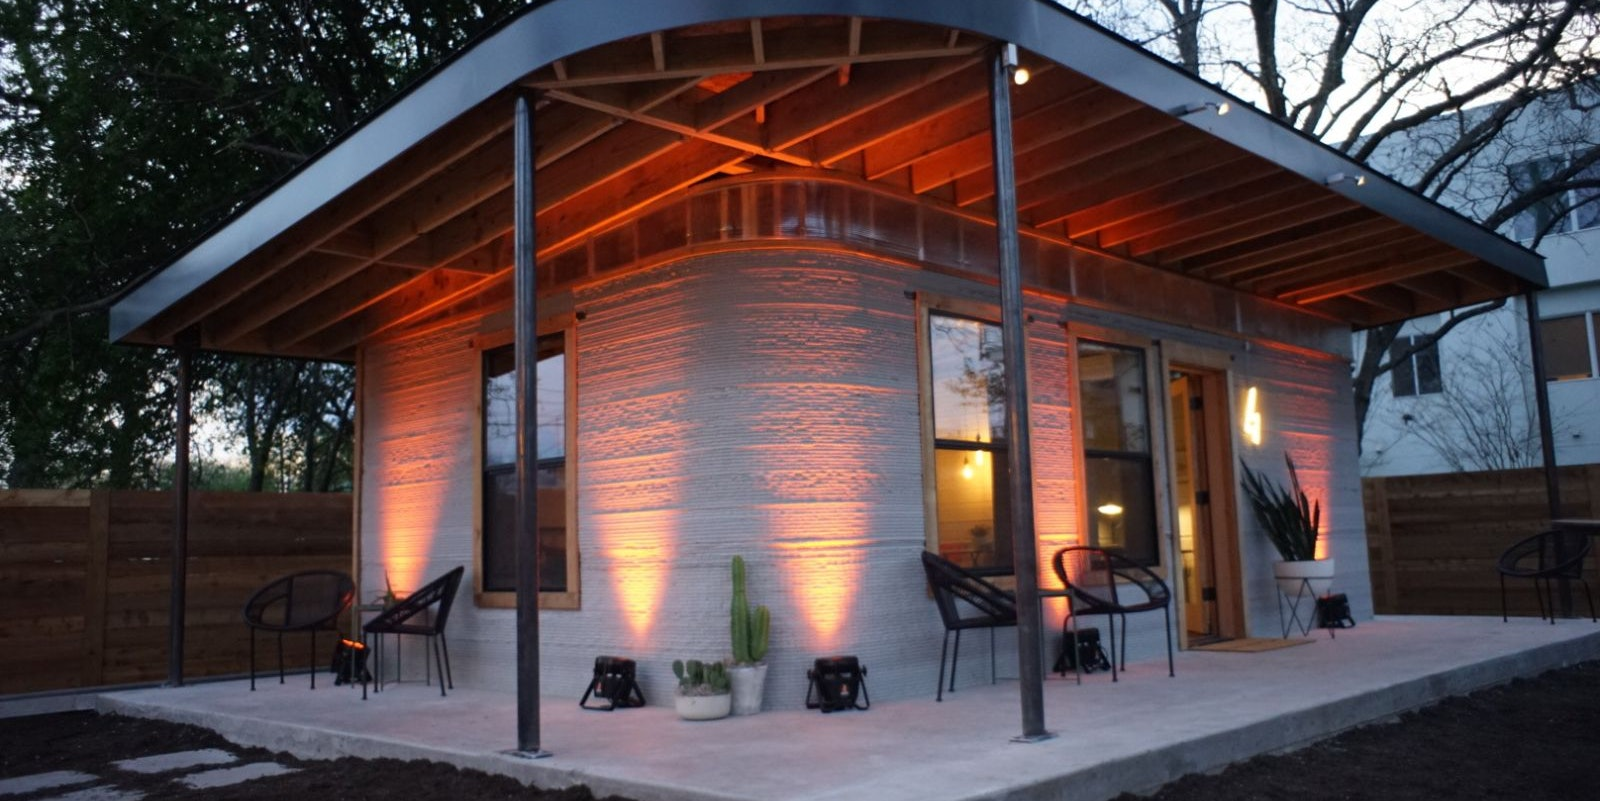 3D-Printed House Finished in a Day, Costs Less Than $10,000